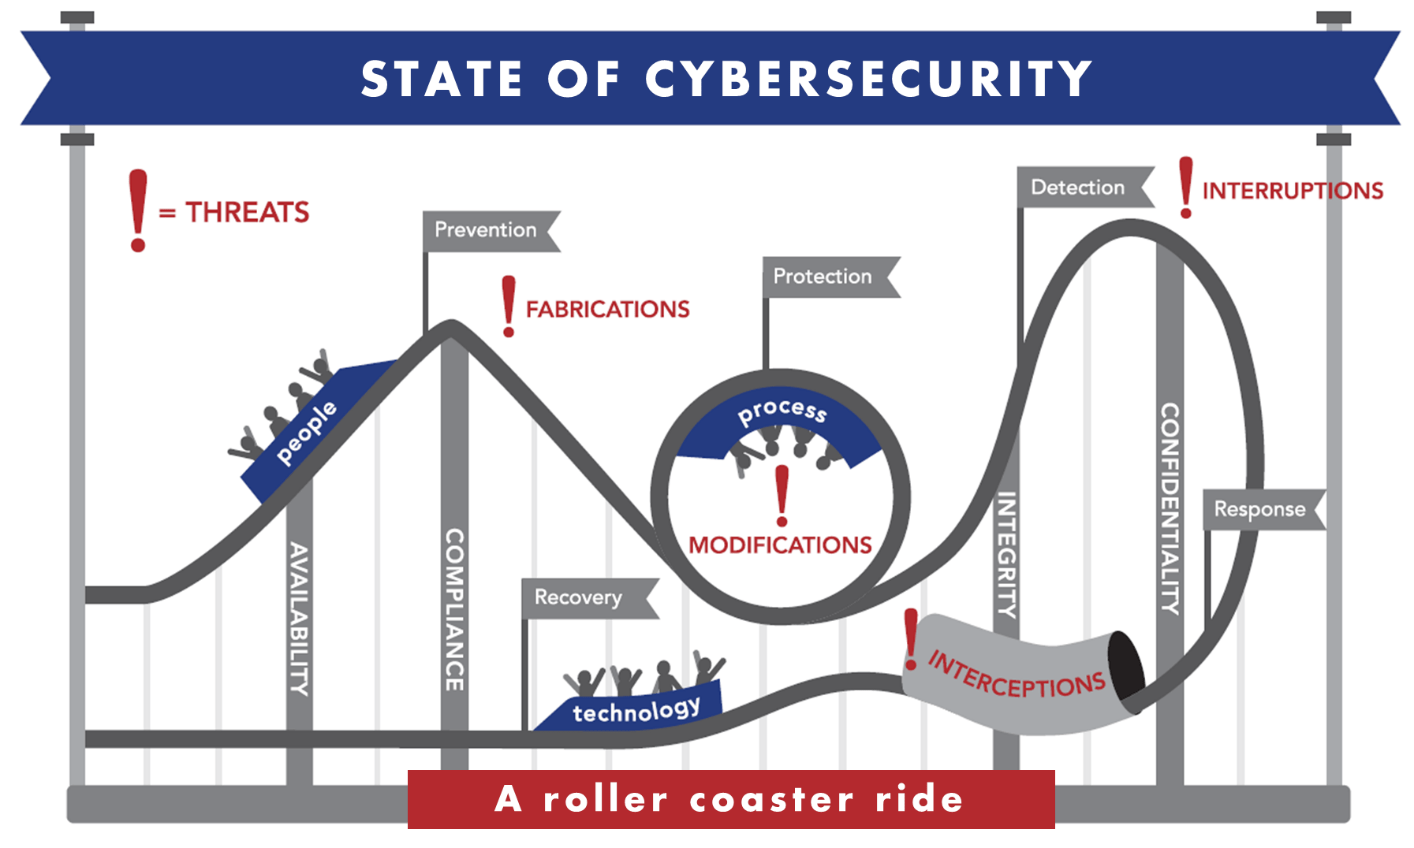 Infographic describing the state of cybersecurity